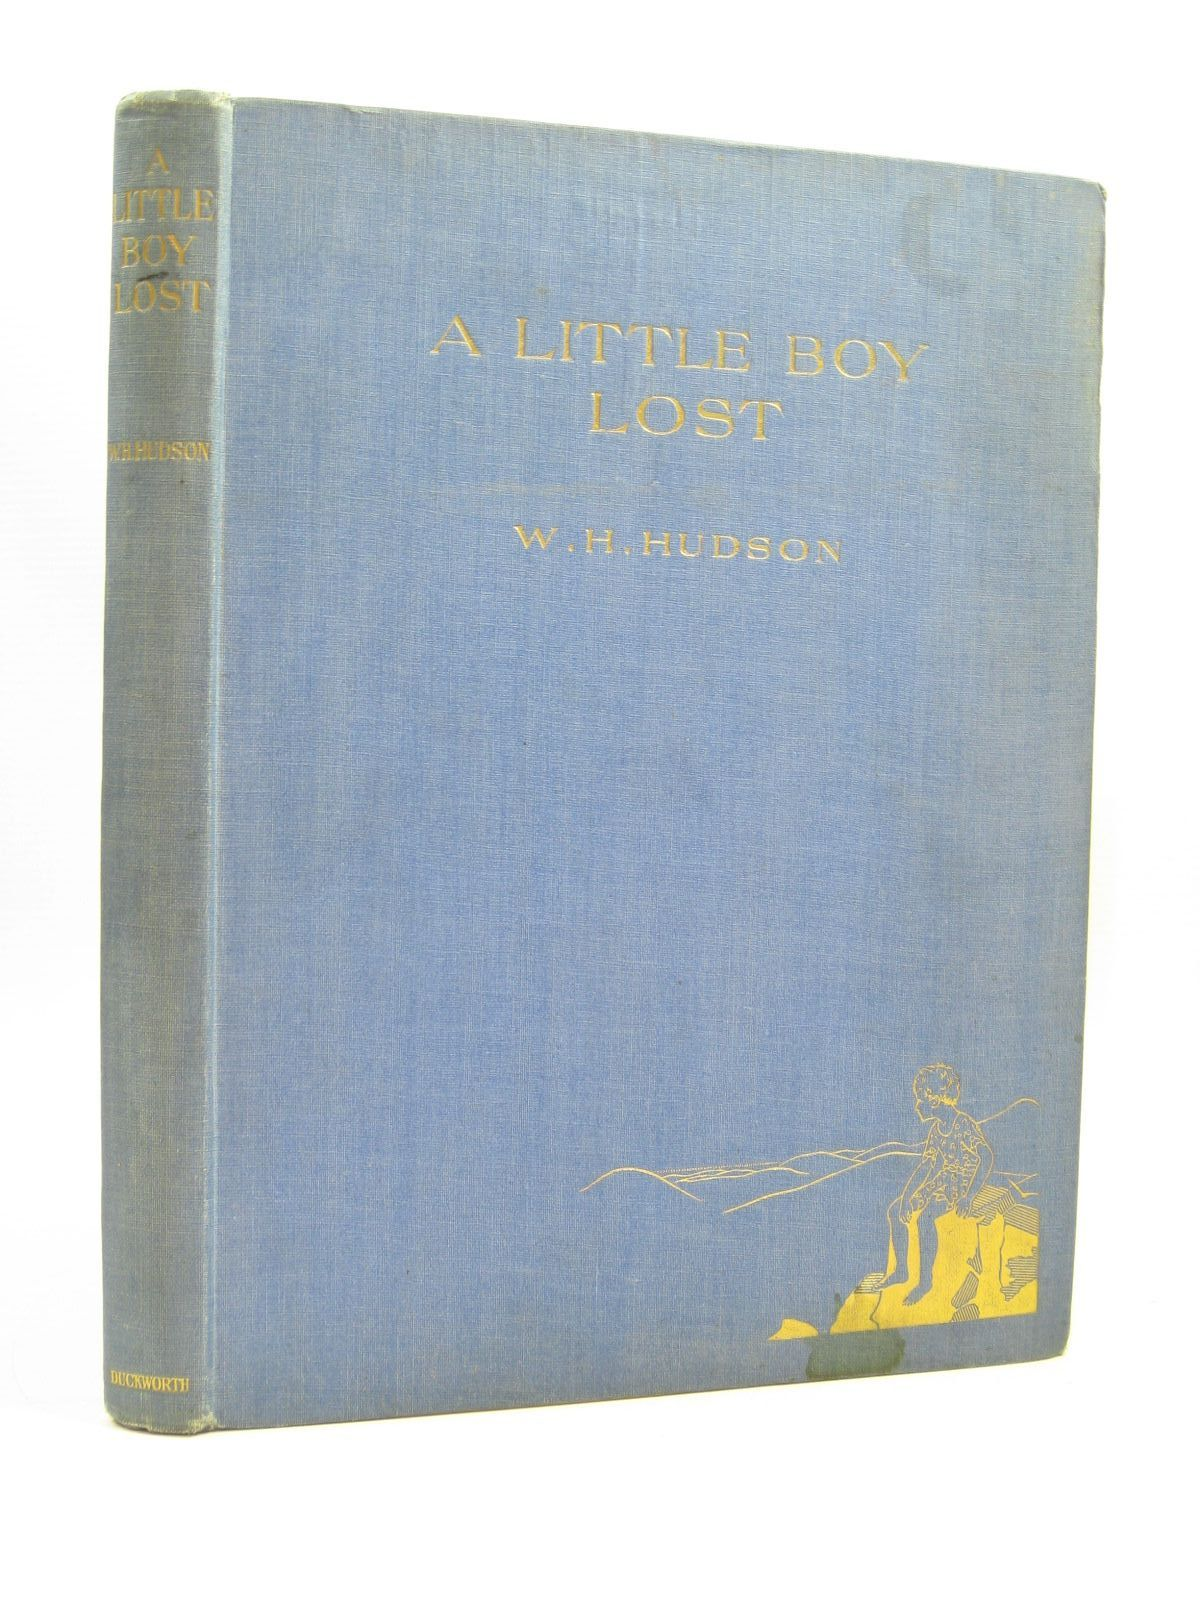 Photo of A LITTLE BOY LOST written by Hudson, W.H. illustrated by Lathrop, Dorothy P. published by Duckworth & Co. (STOCK CODE: 1314511)  for sale by Stella & Rose's Books